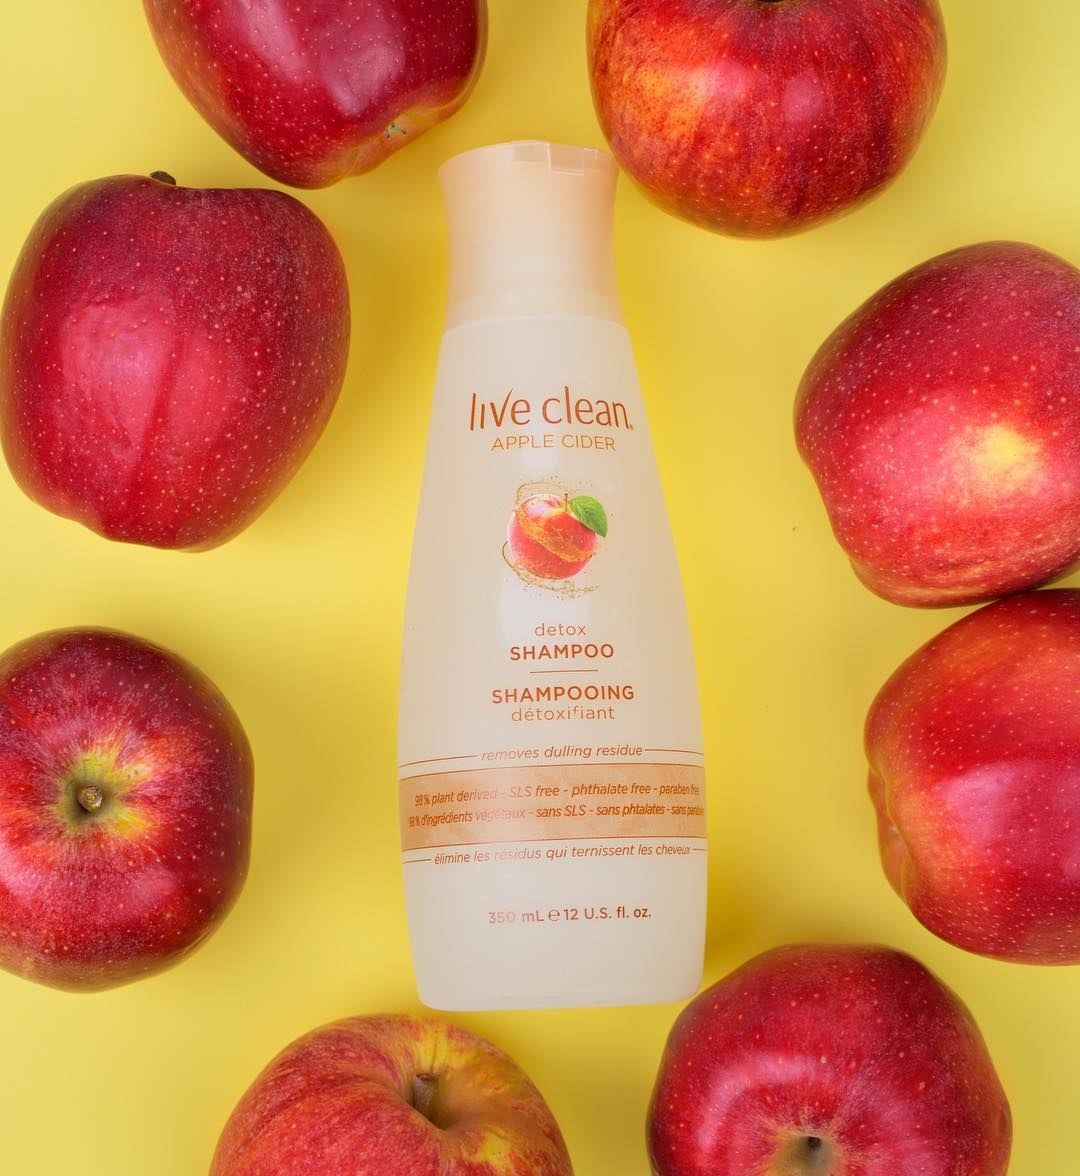 A bottle of shampoo with a circle of apples placed around it